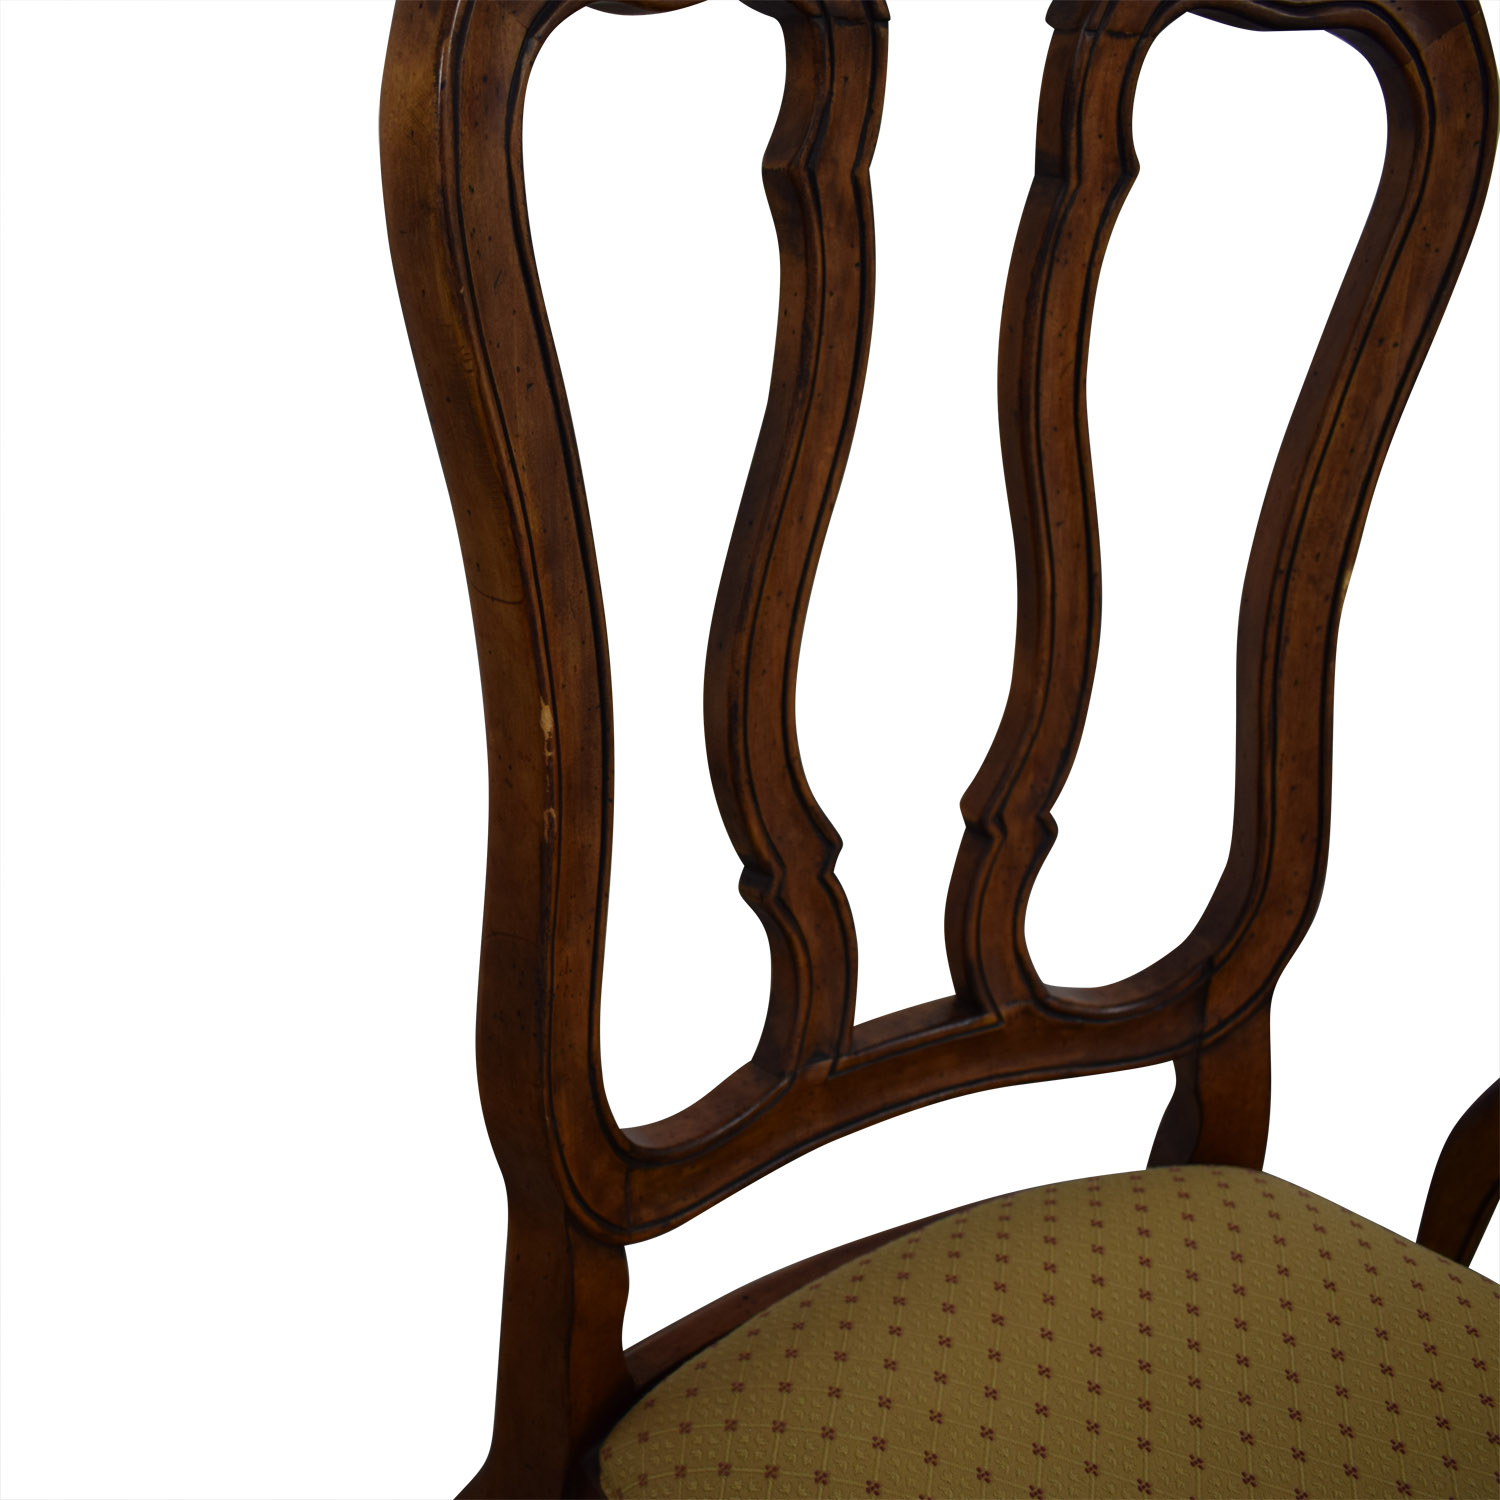 Ethan Allen Ethan Allen Dining Arm Chairs and Side Chairs coupon